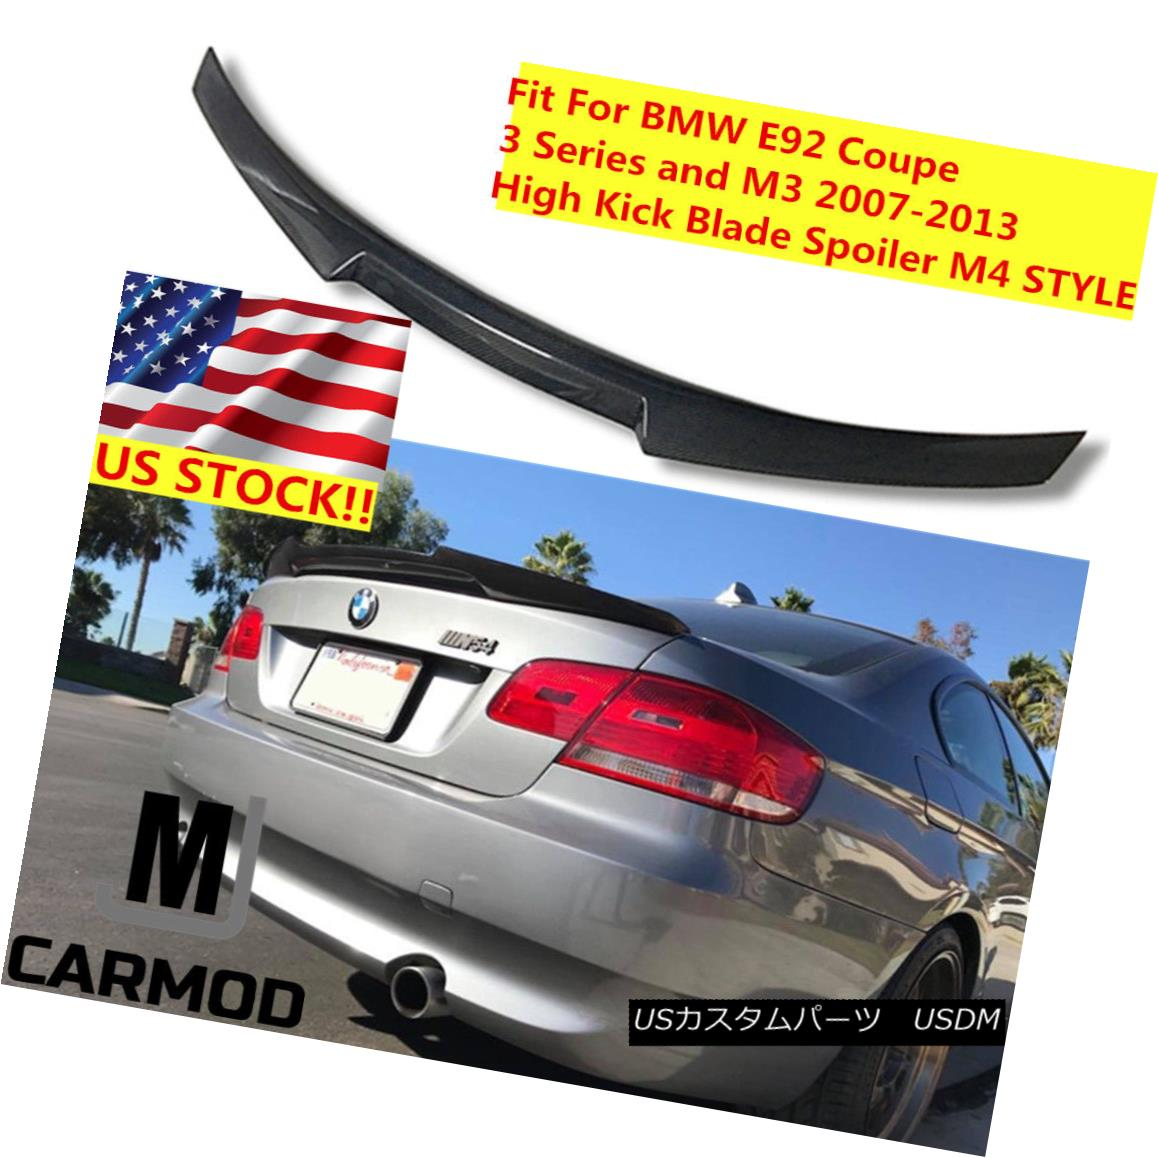 エアロパーツ US Fit For BMW E92 07-13 Coupe Carbon Fiber Rear Trunk Spoiler M4 TYPE HIGH KICK BMW E92用US Fit 07-13クーペ炭素繊維リアトランク・スポイラーM4 TYPE HIGH KICK